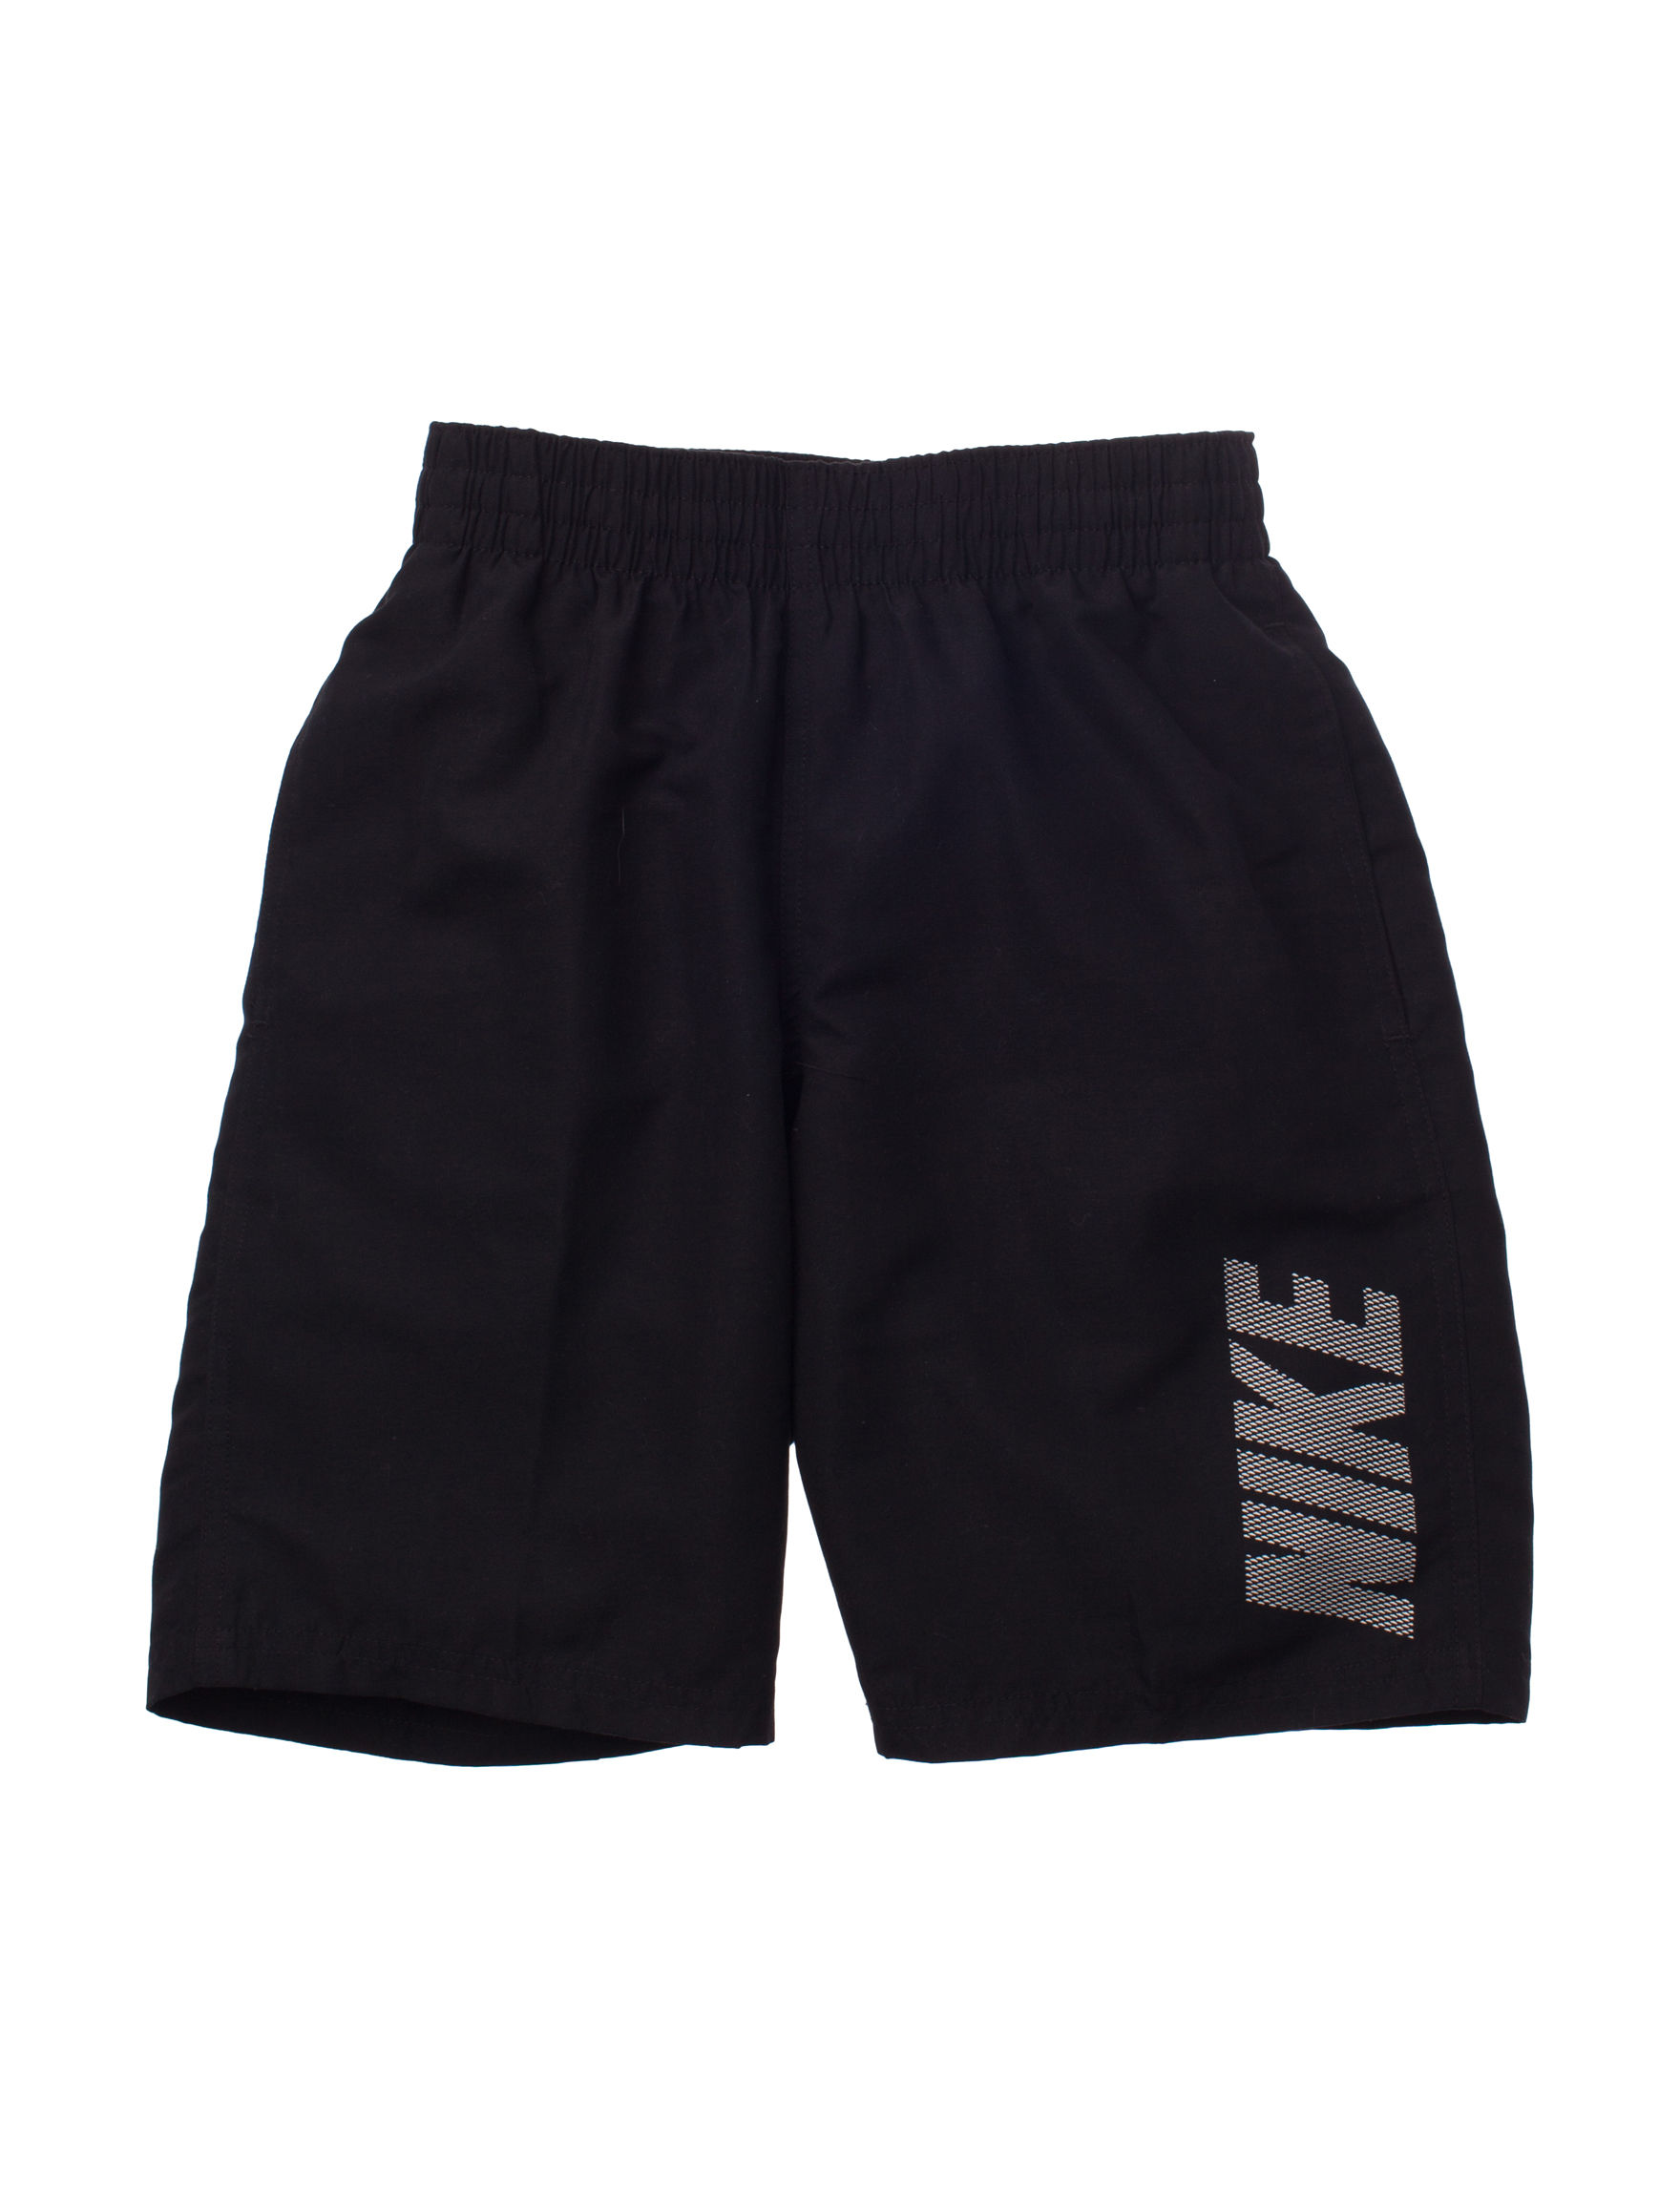 Nike Black Swimsuit Bottoms